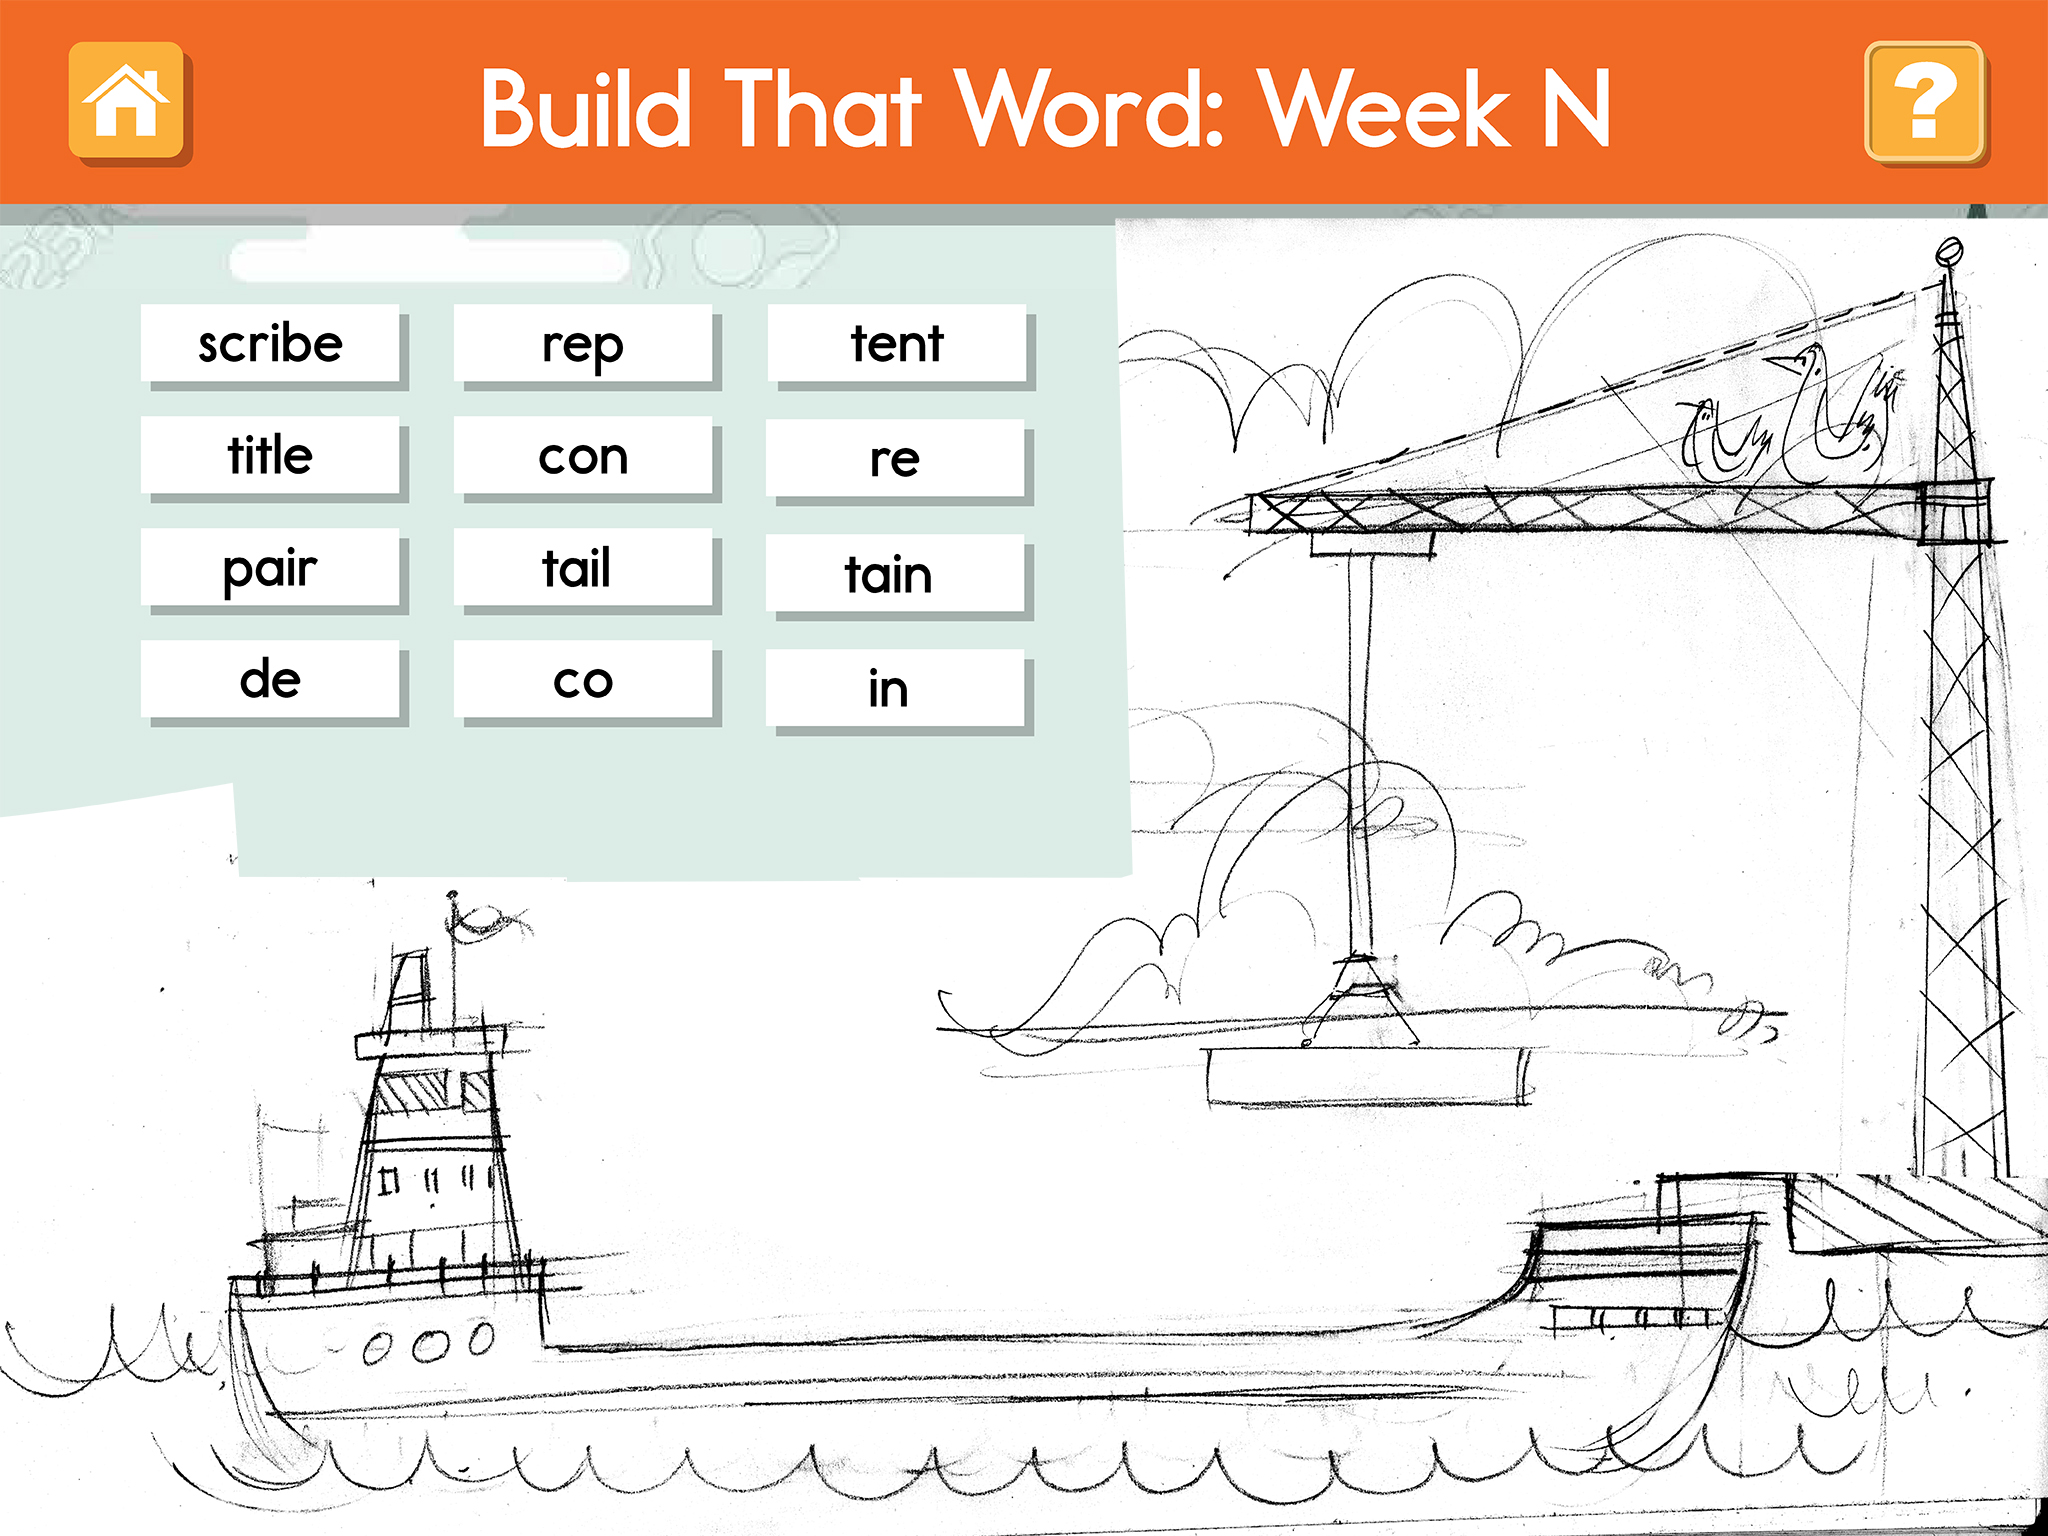 word game app screen wireframe